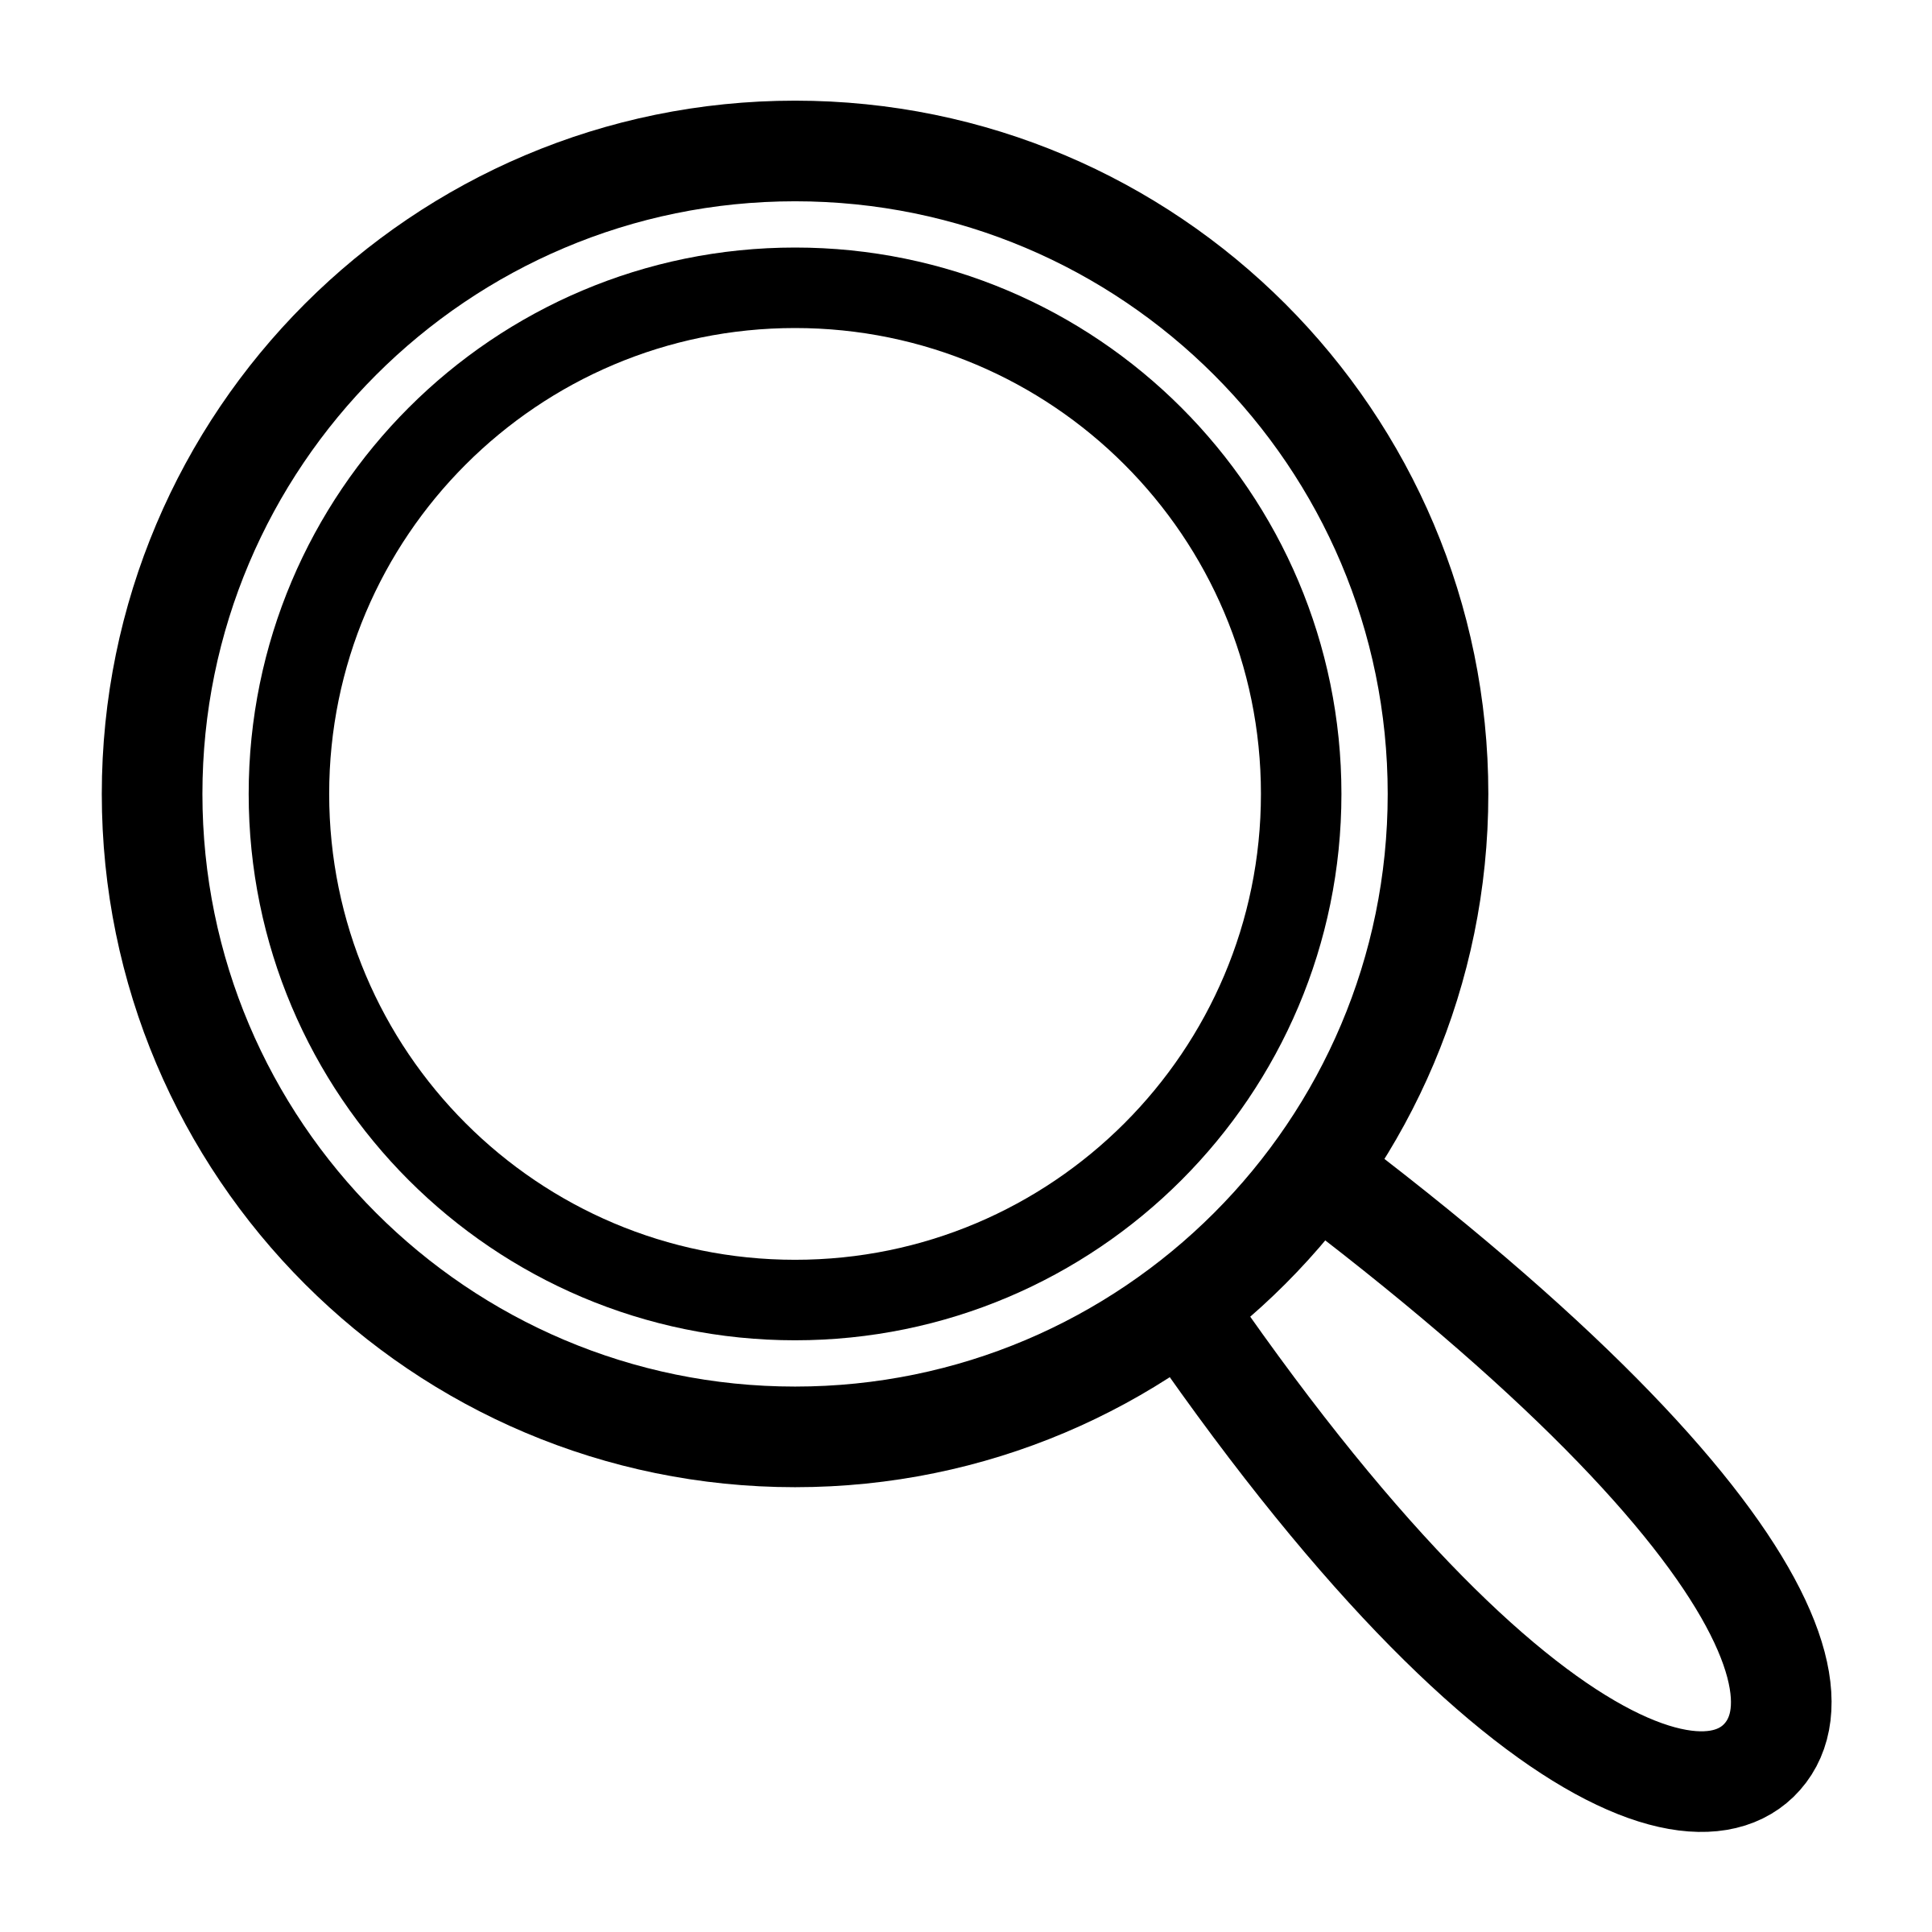 mono searchtool by dannya